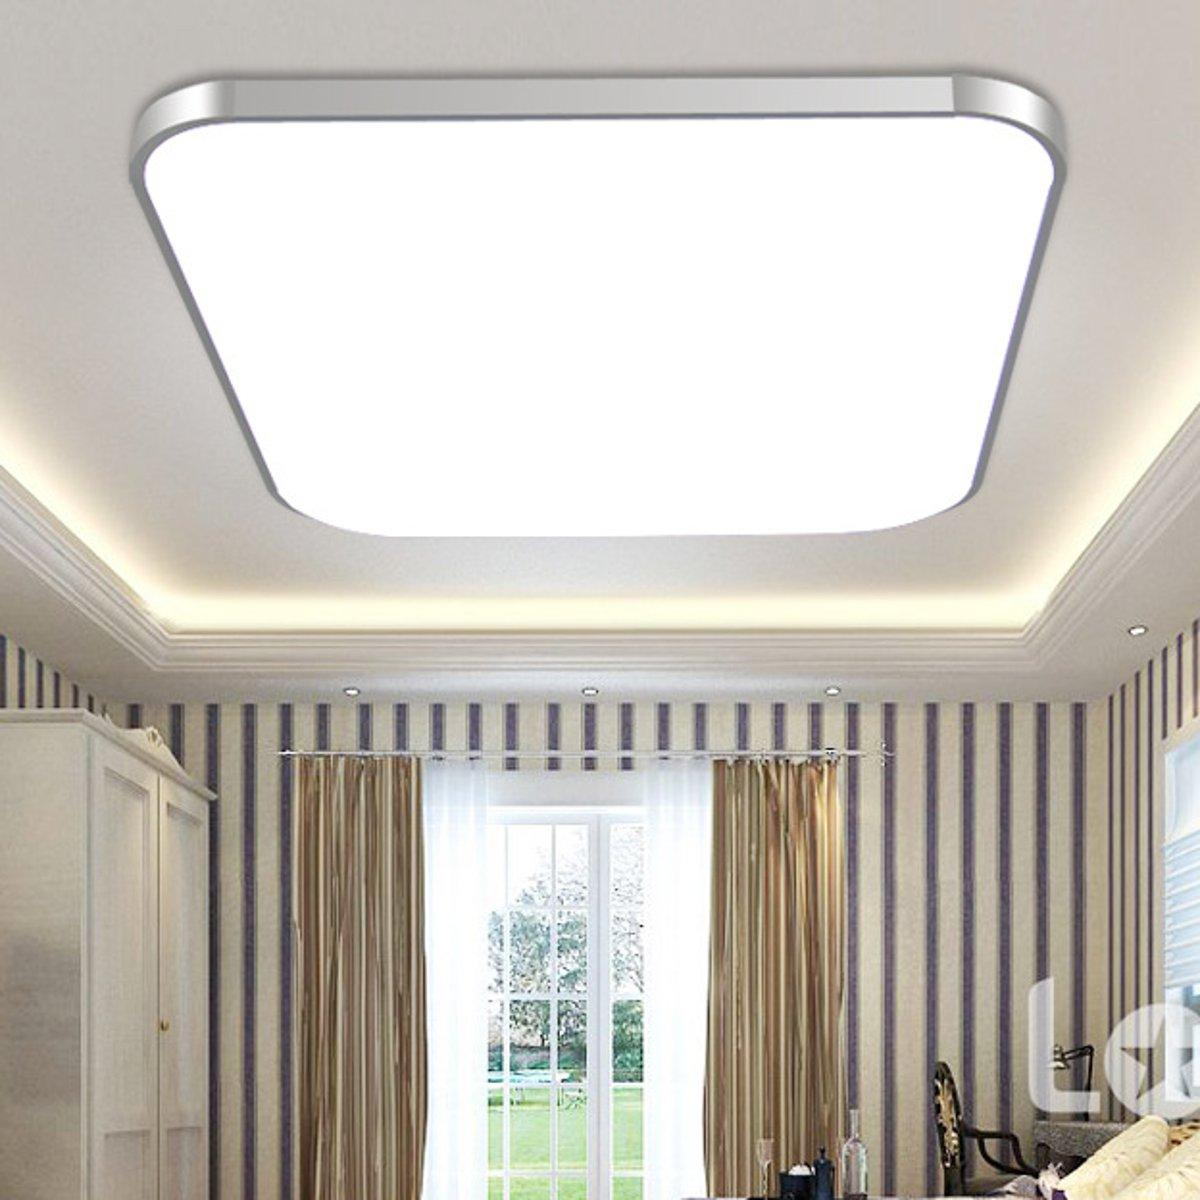 48W LED Square Ceiling Down Light Bedroom Living Room Lamp Surface Mount # White Light 48W- intl